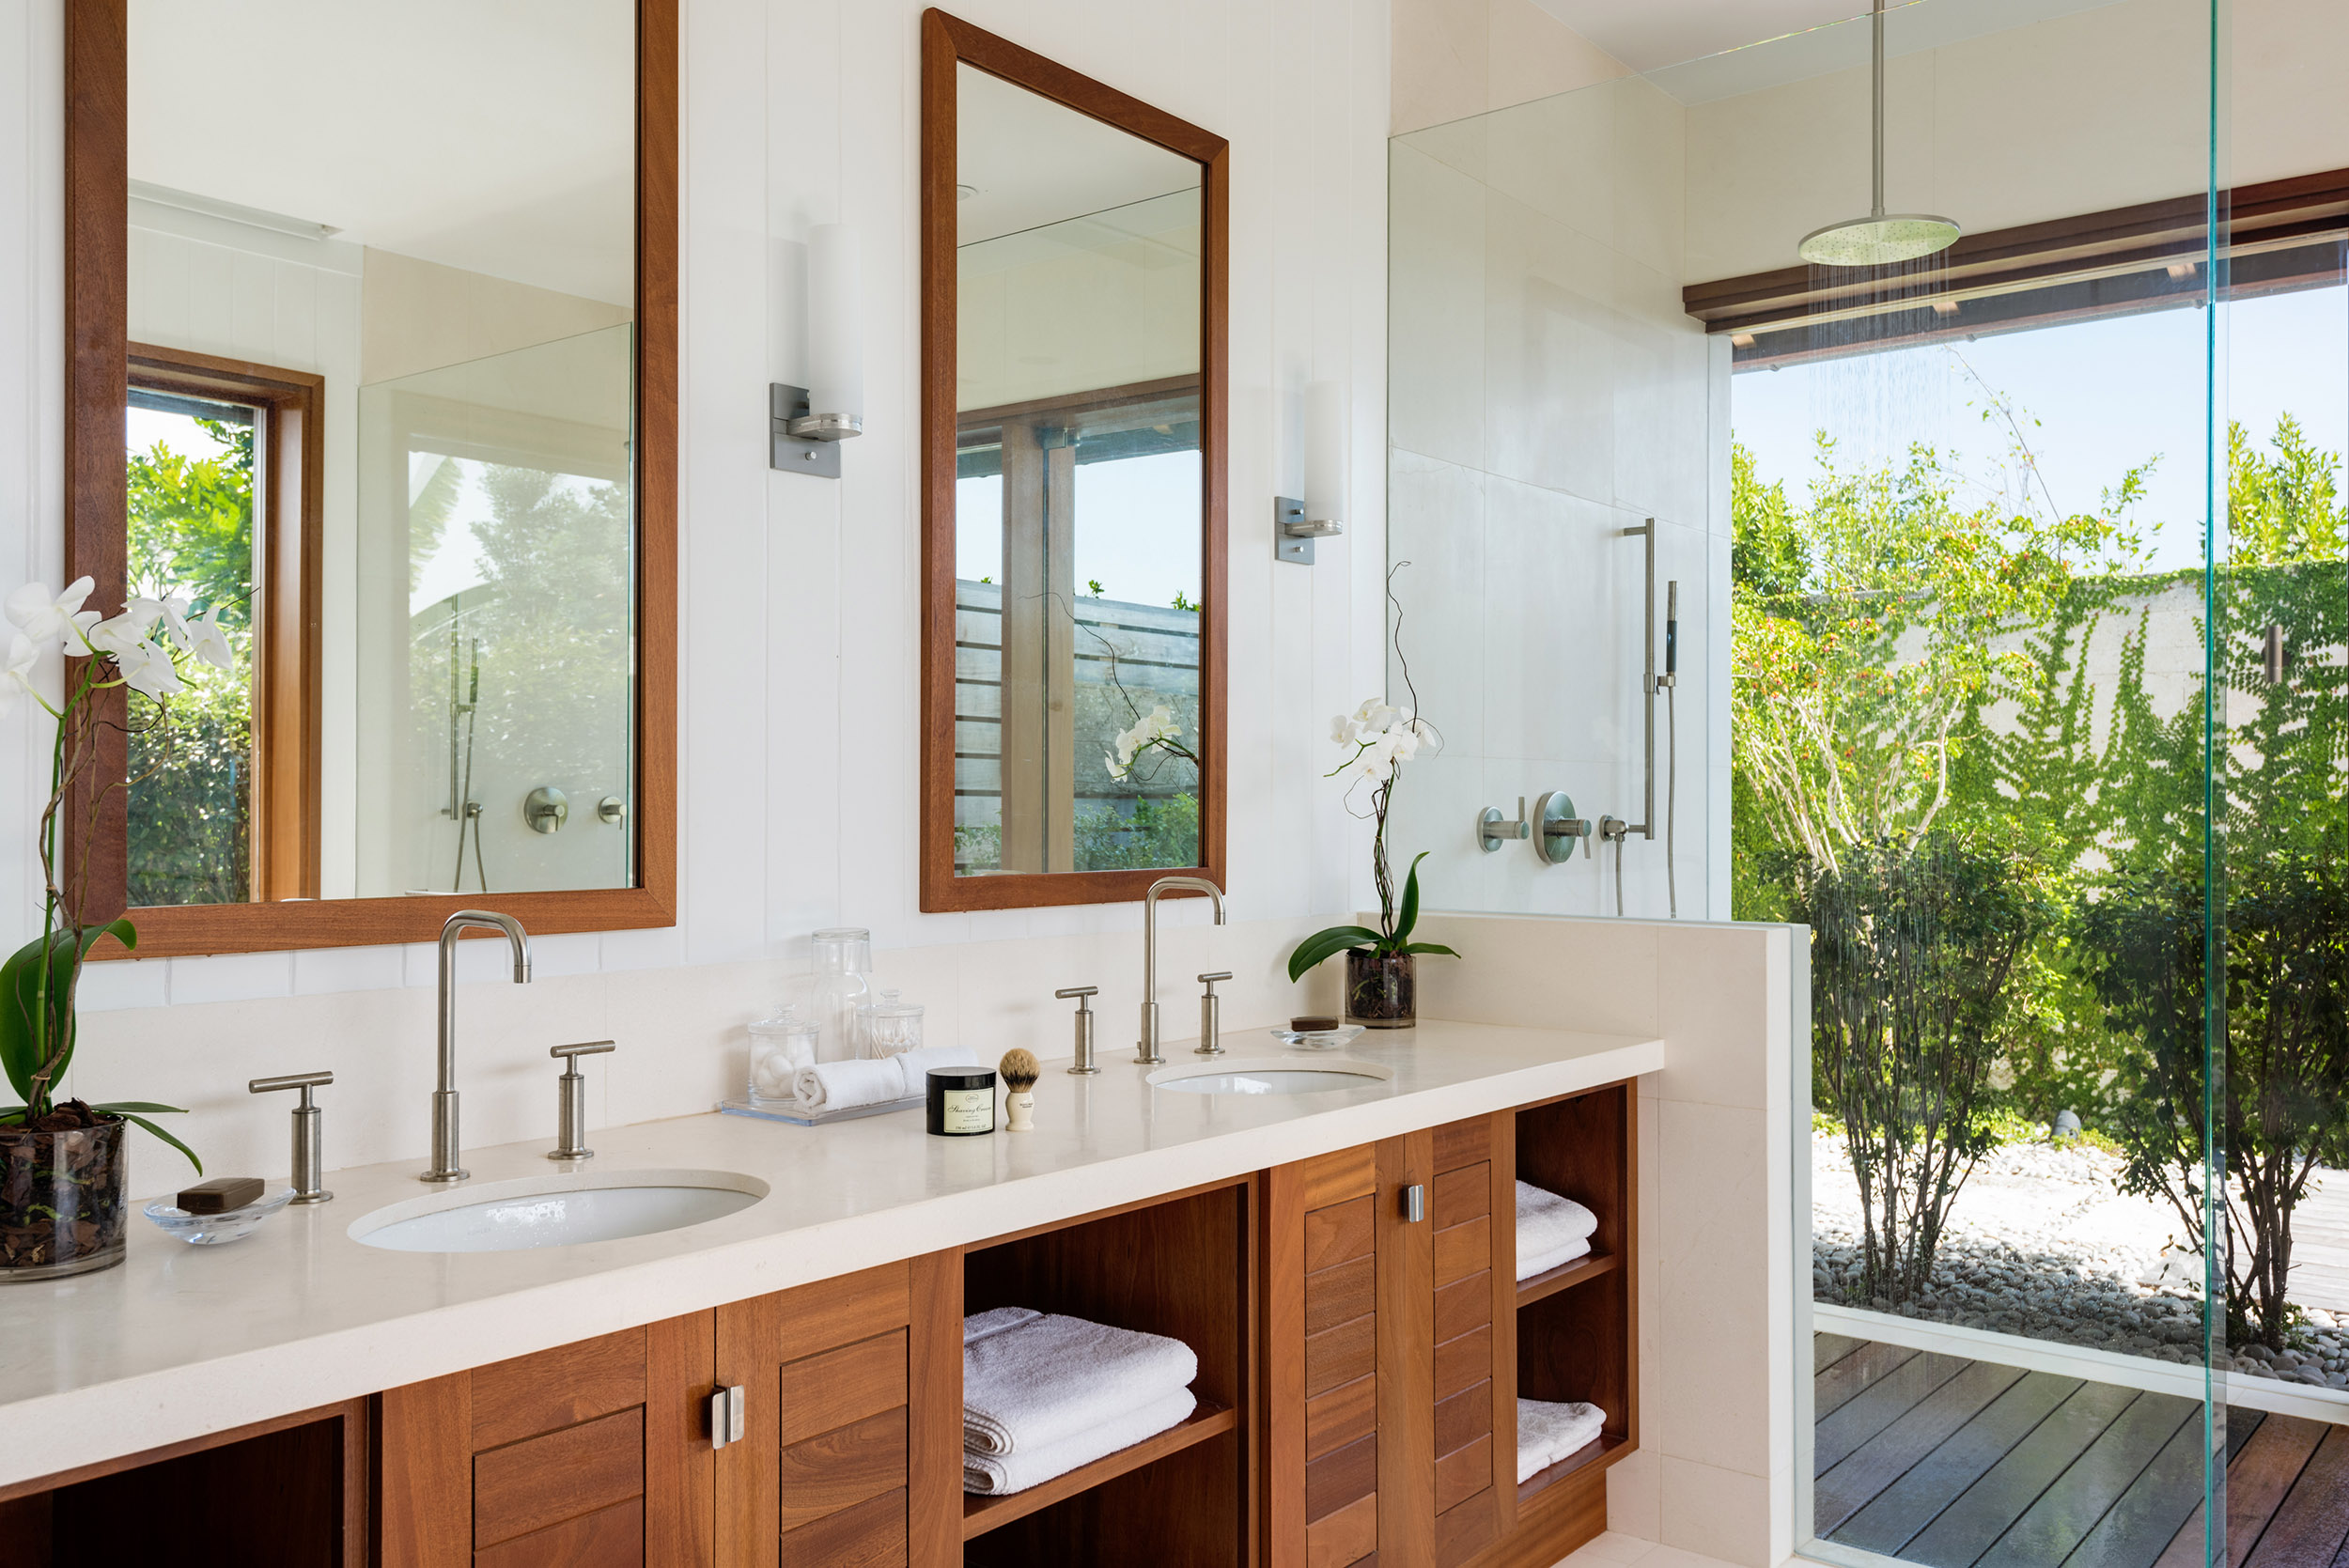 Serenity - view of one of the bathrooms